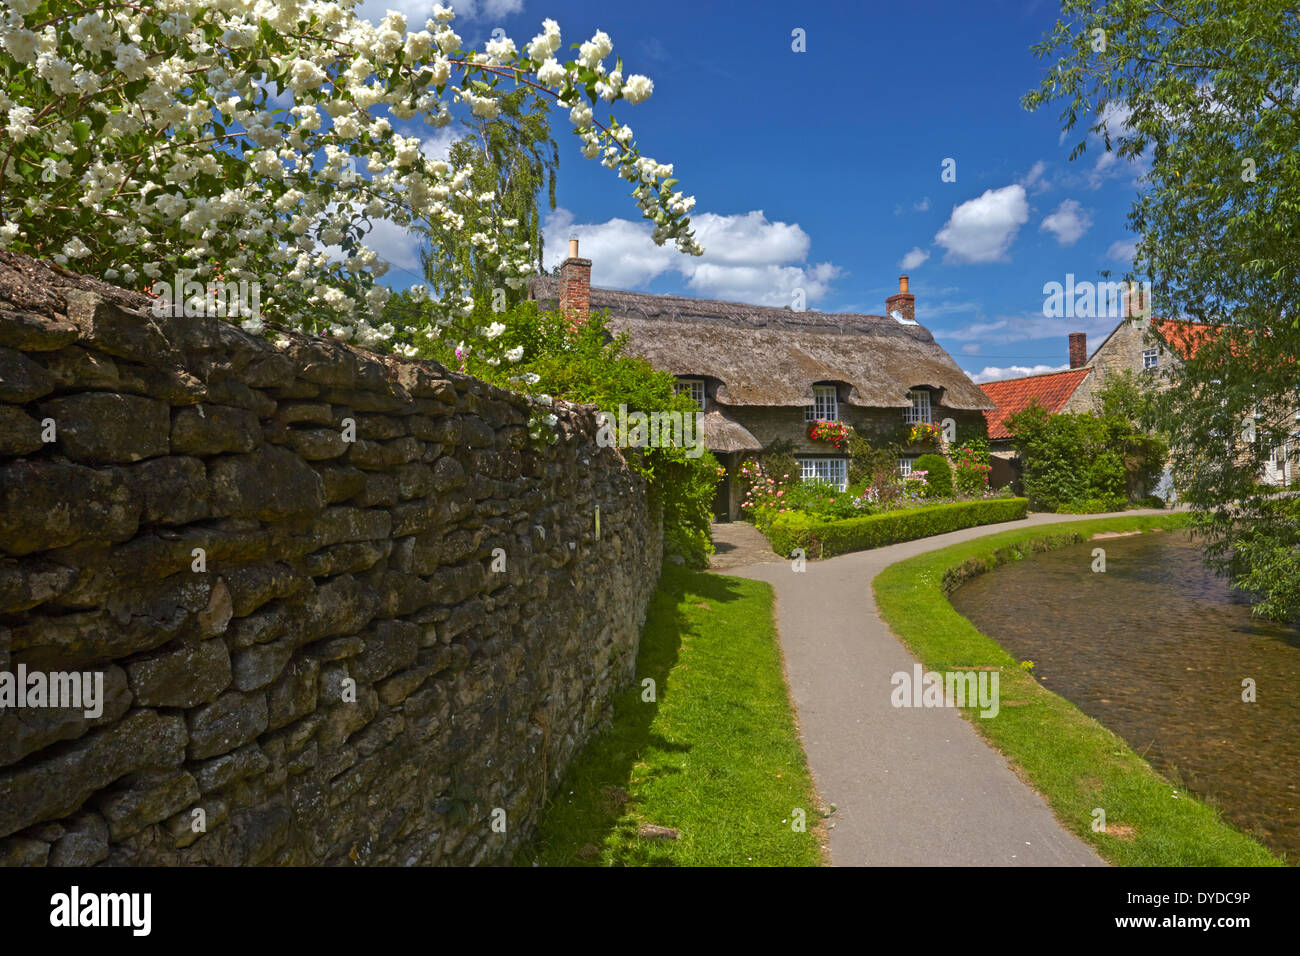 A thatched cottage at Thornton le Dale. - Stock Image